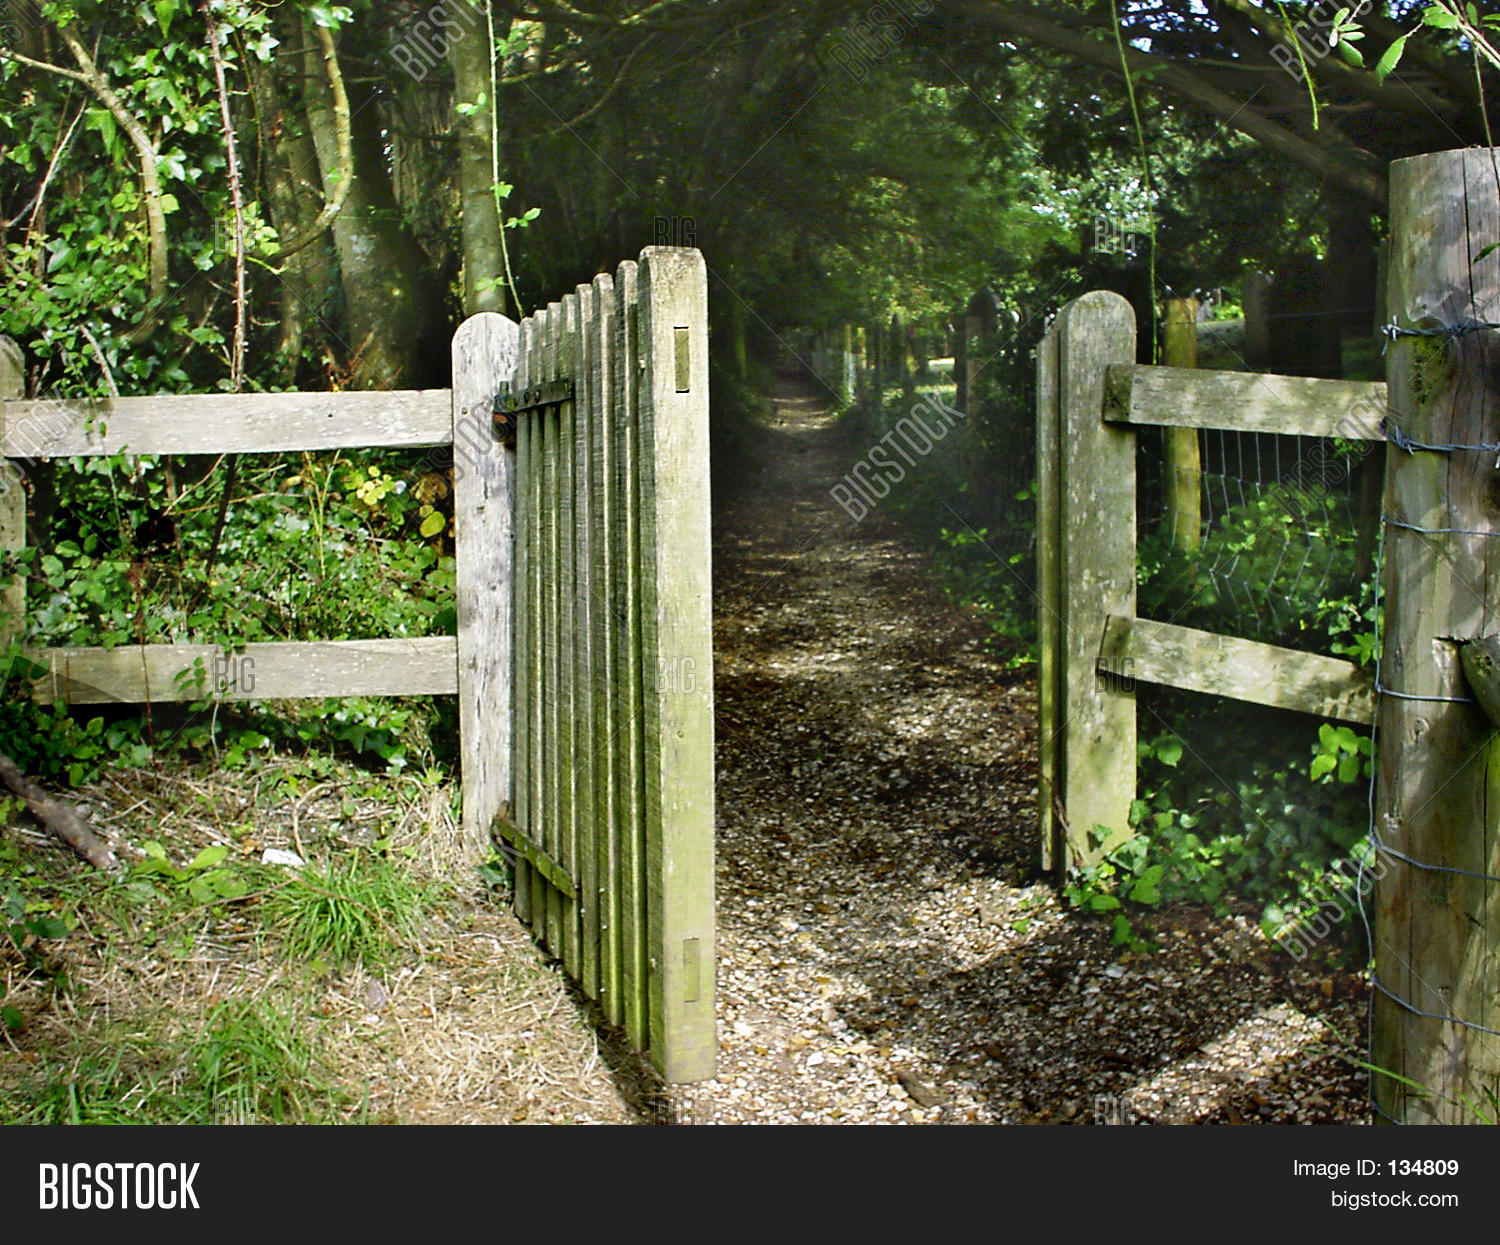 open gate image photo free trial bigstock